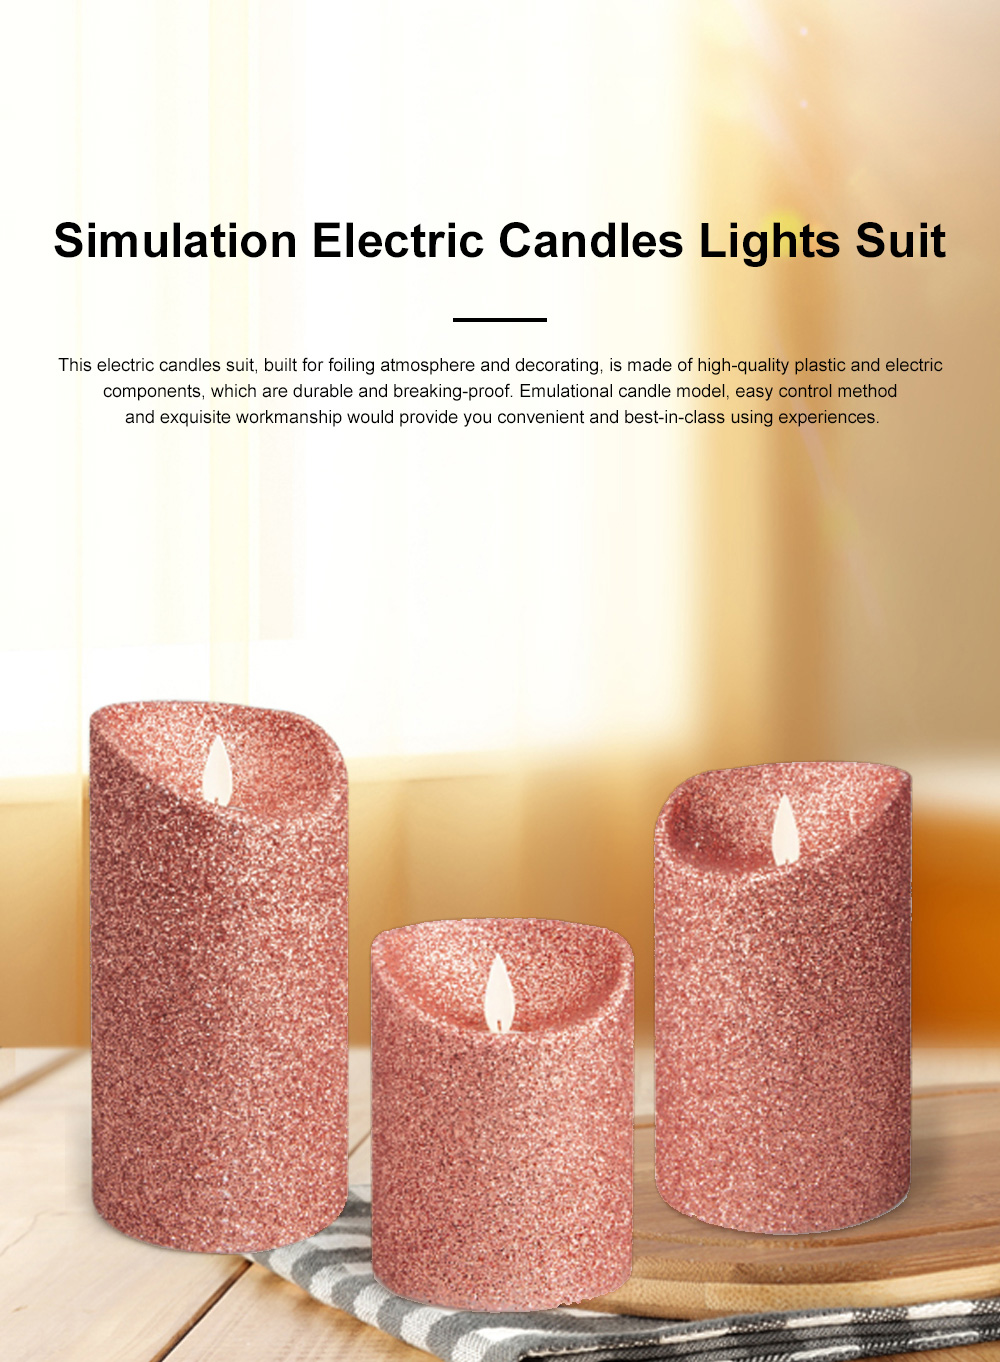 3PCS Led Candle Light Suit Rose Golden Simulation Flame Smokeless Electric Candle Lights with Remote Control Adjustable Automatic Timer 0